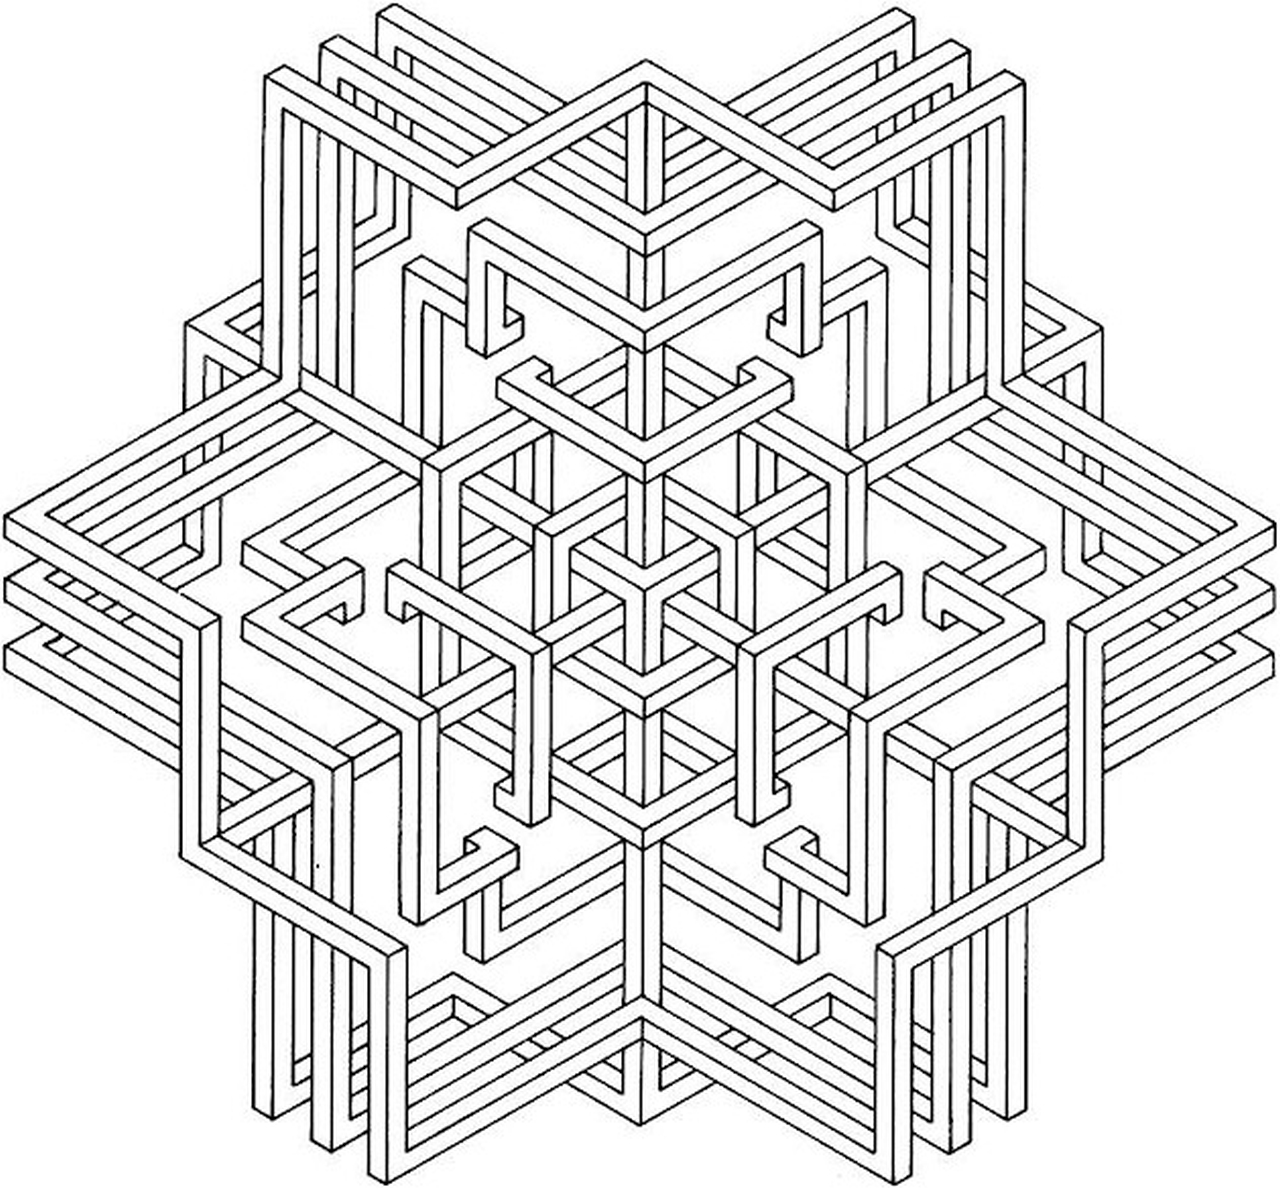 design coloring pictures 5 zentangle pattern design coloring pages coloring design pictures